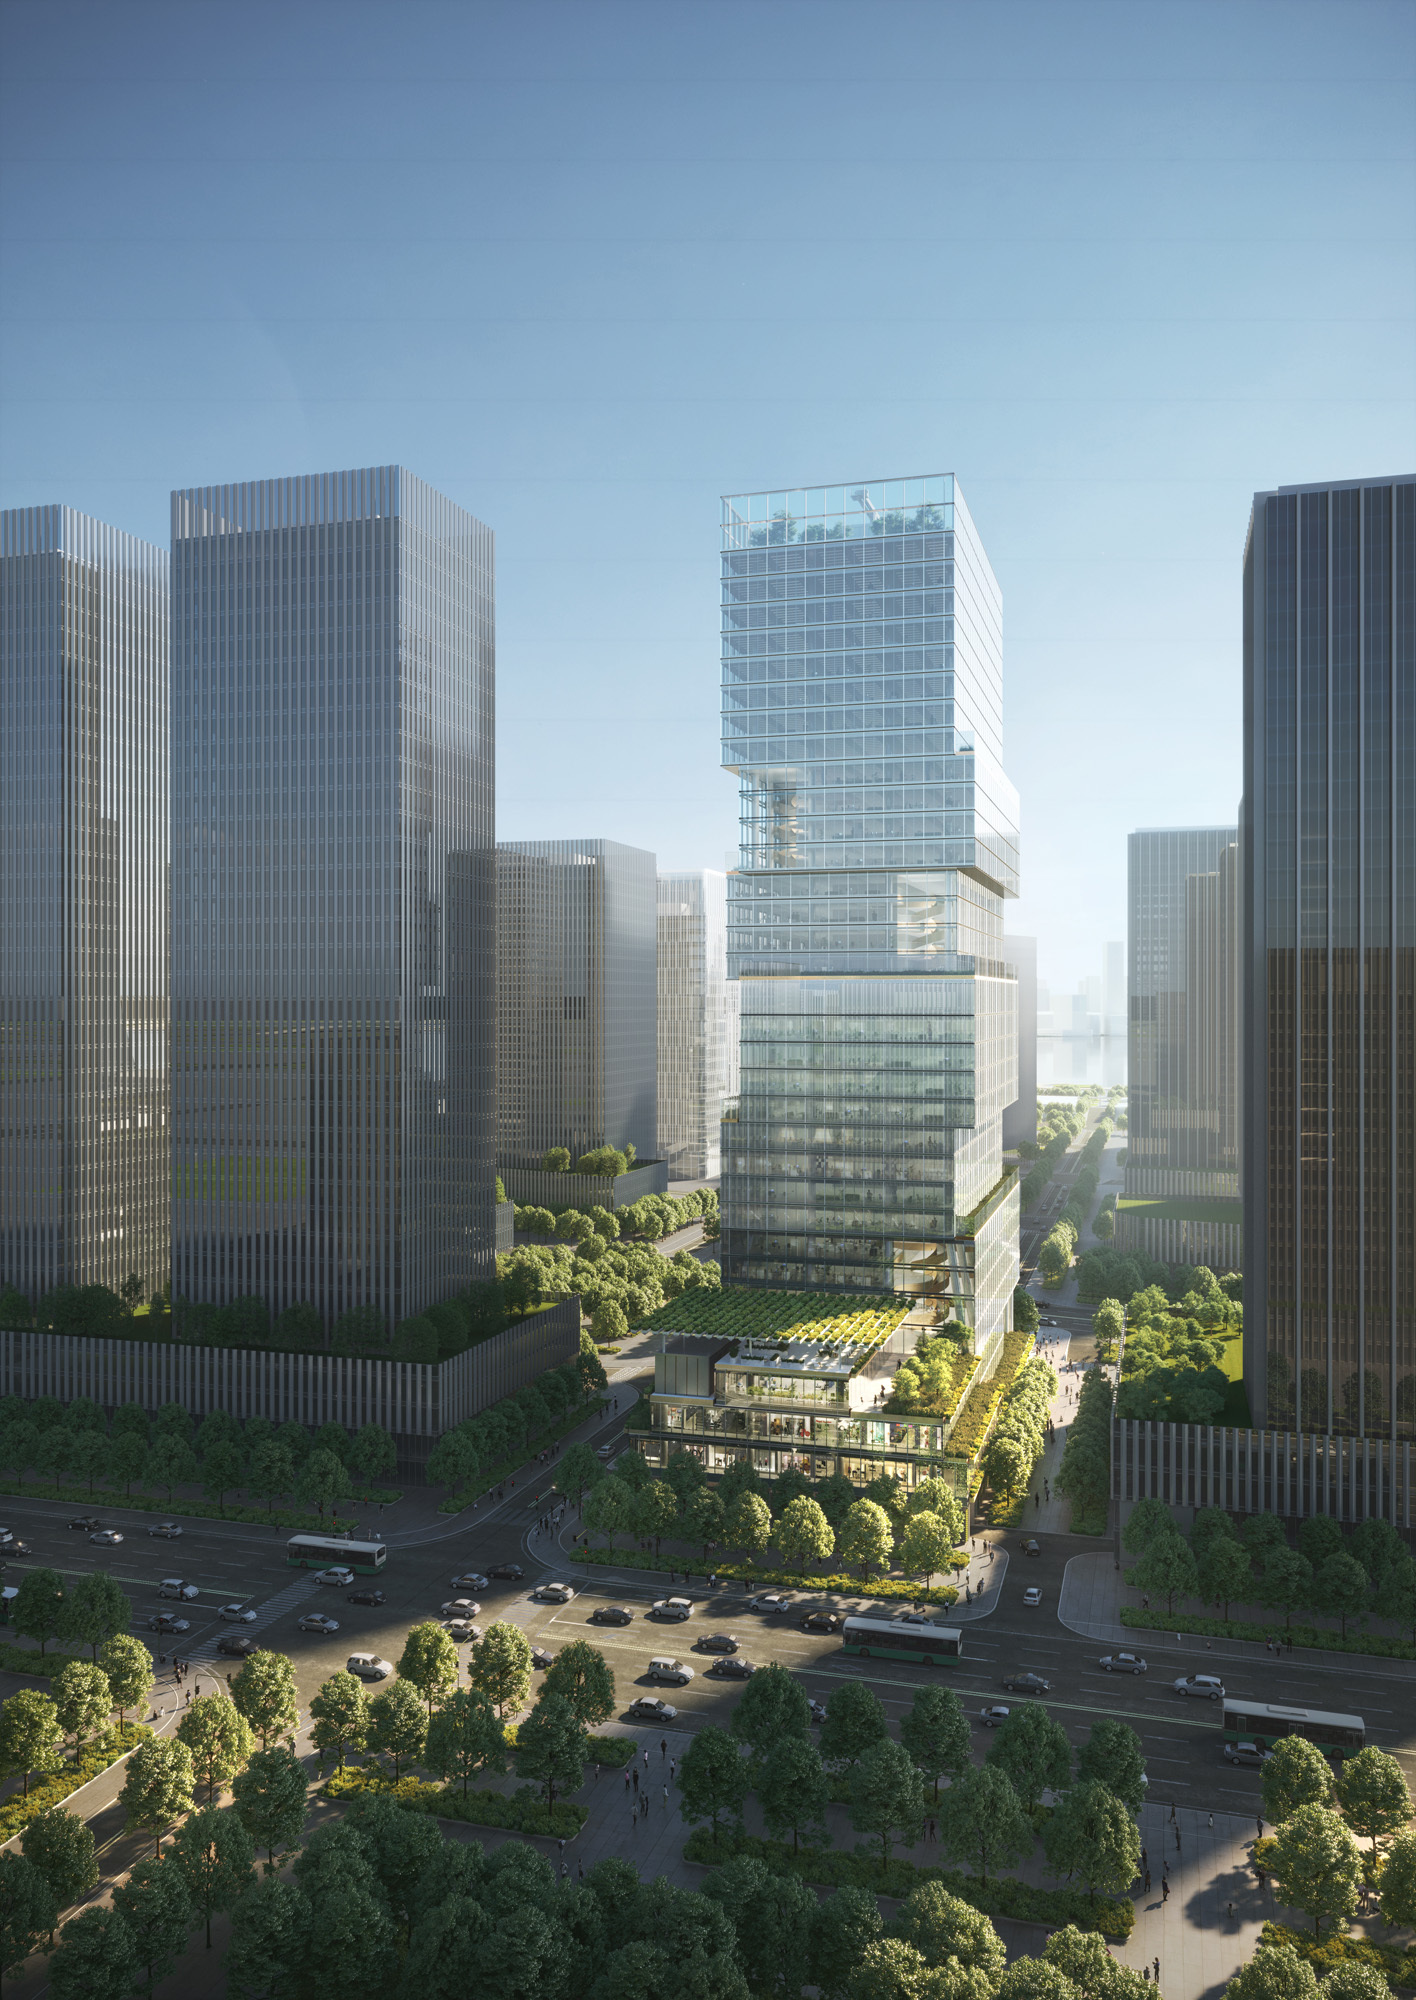 Jaeger Kahlen Partner Wins Joint First Prize to Design Office Building in Shenzhen, China